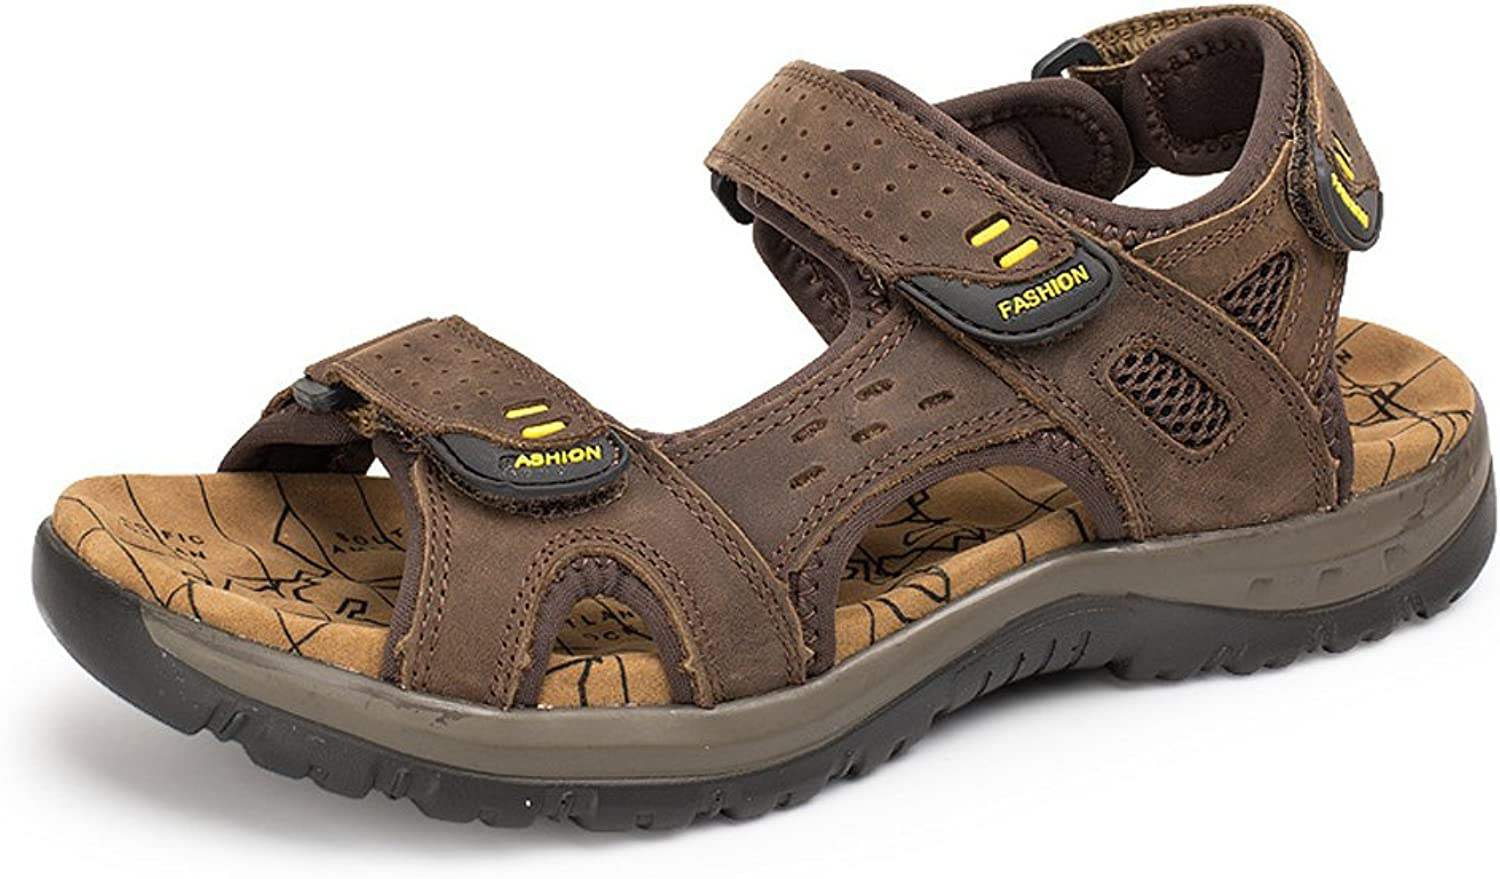 Baviue Womens Ankle Strap Leather Beach Sandals Hiking Sandles